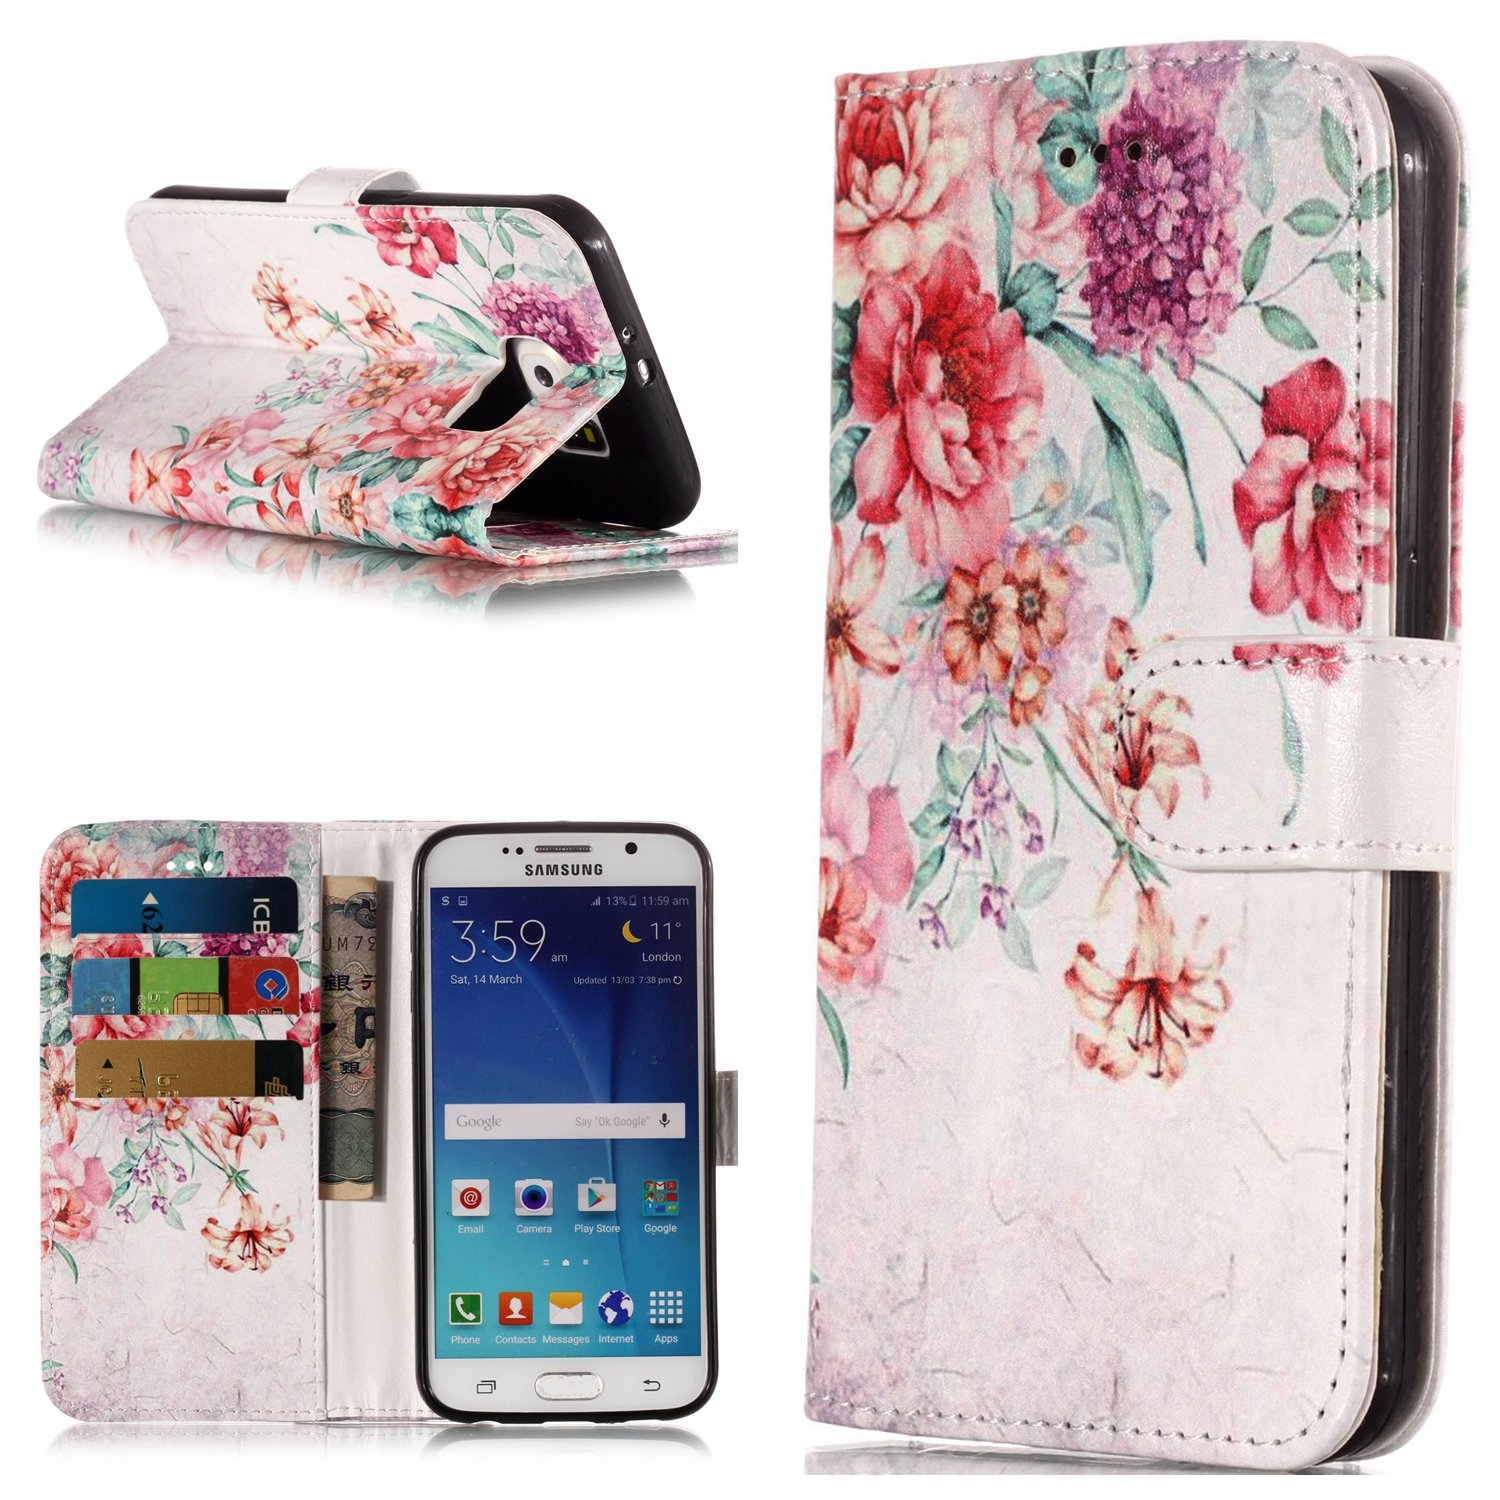 Marble Flip Case for Galaxy S6,Wallet Cover for Galaxy S6,Leeook Pretty Elegante Creative Strap Marble Rose Gold White Design Bookstyle Wrist Strap Magnetic Card Slots Pu Leather Soft Inner Stand Function Protective Folding Wallet Case Cover for Samsung Ga